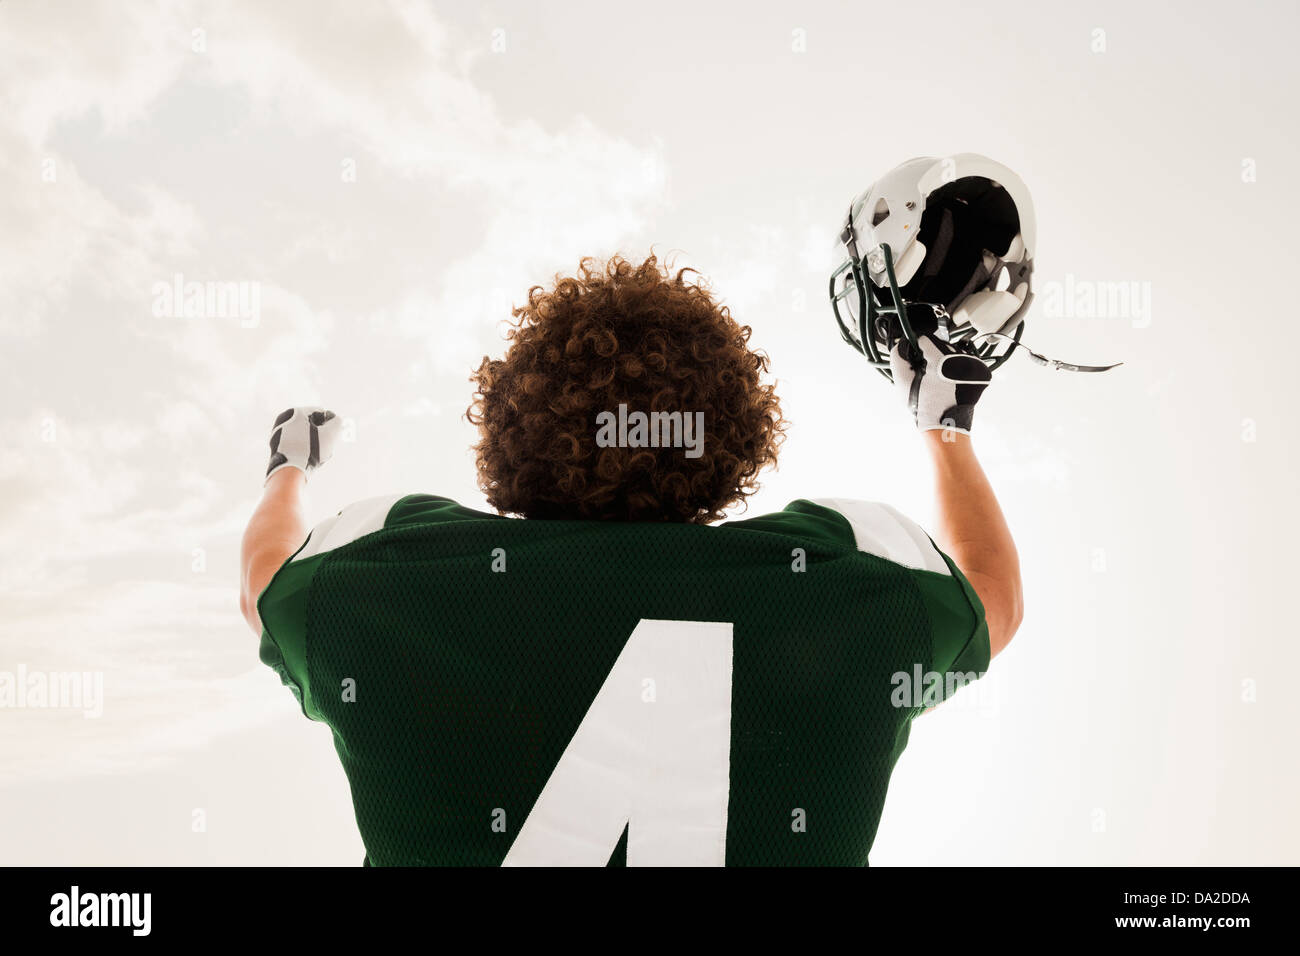 Portrait of American football player celebrating victory - Stock Image